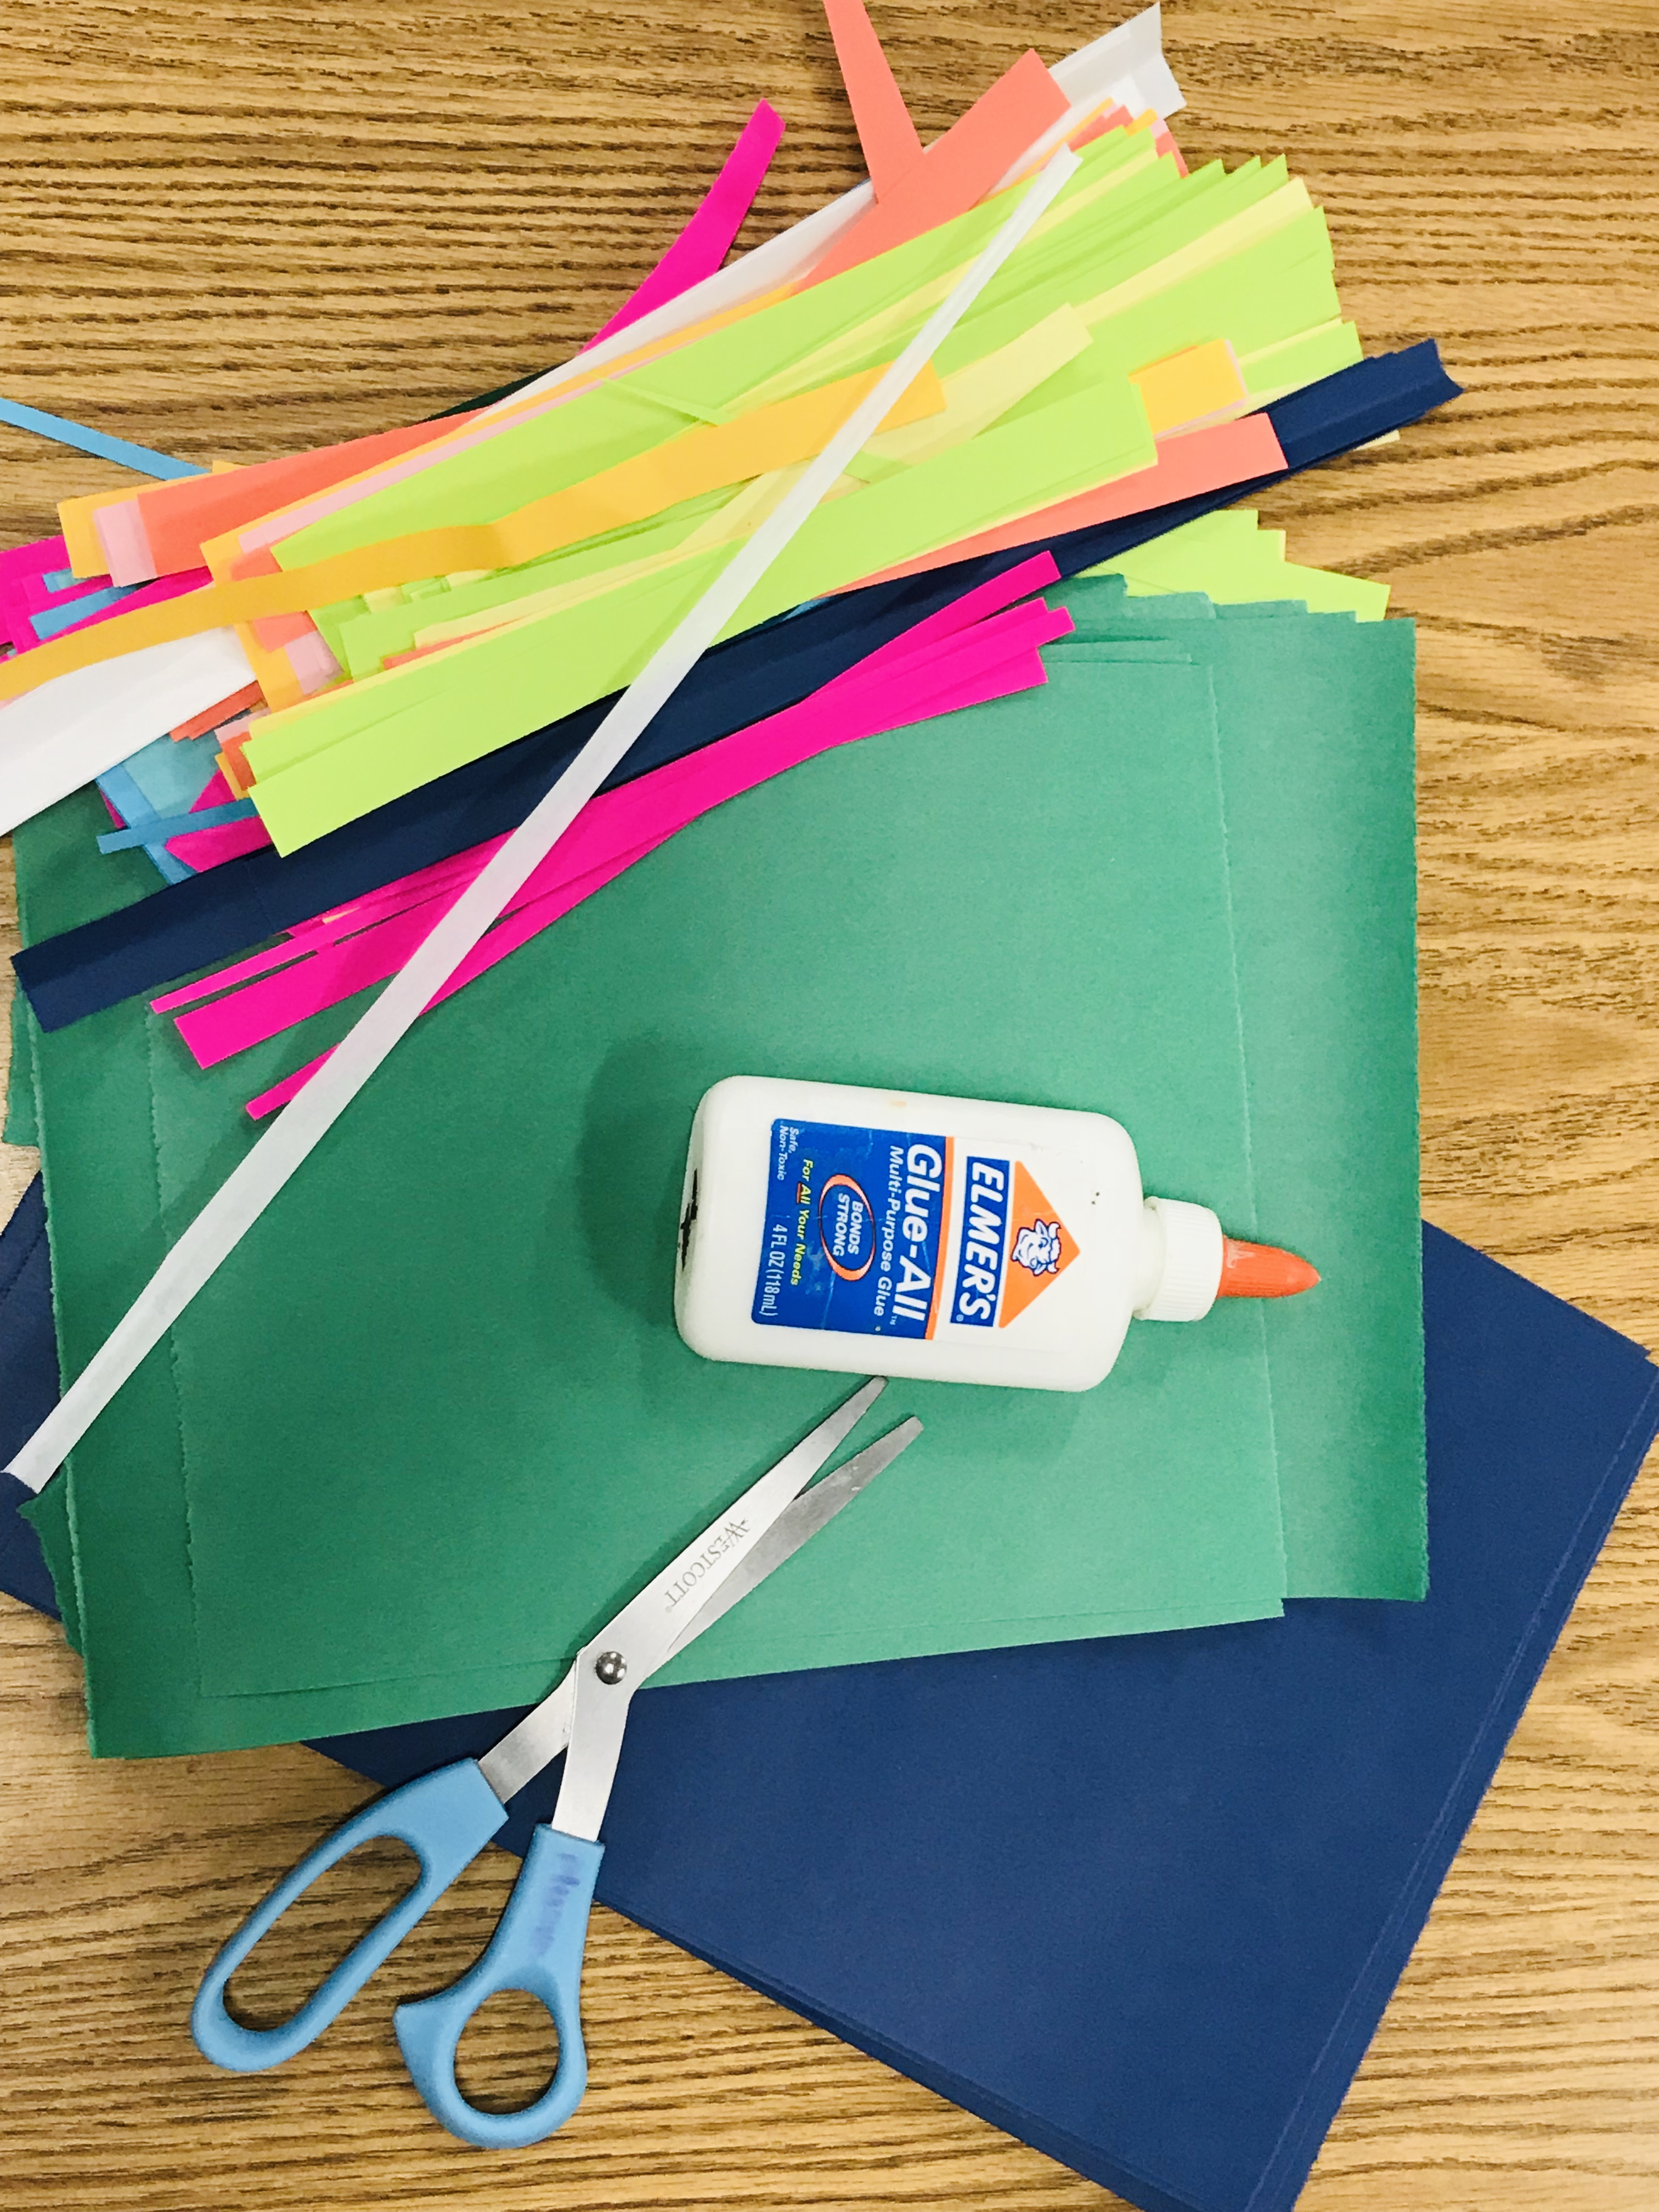 Paper sheets and strips with glue and scissors